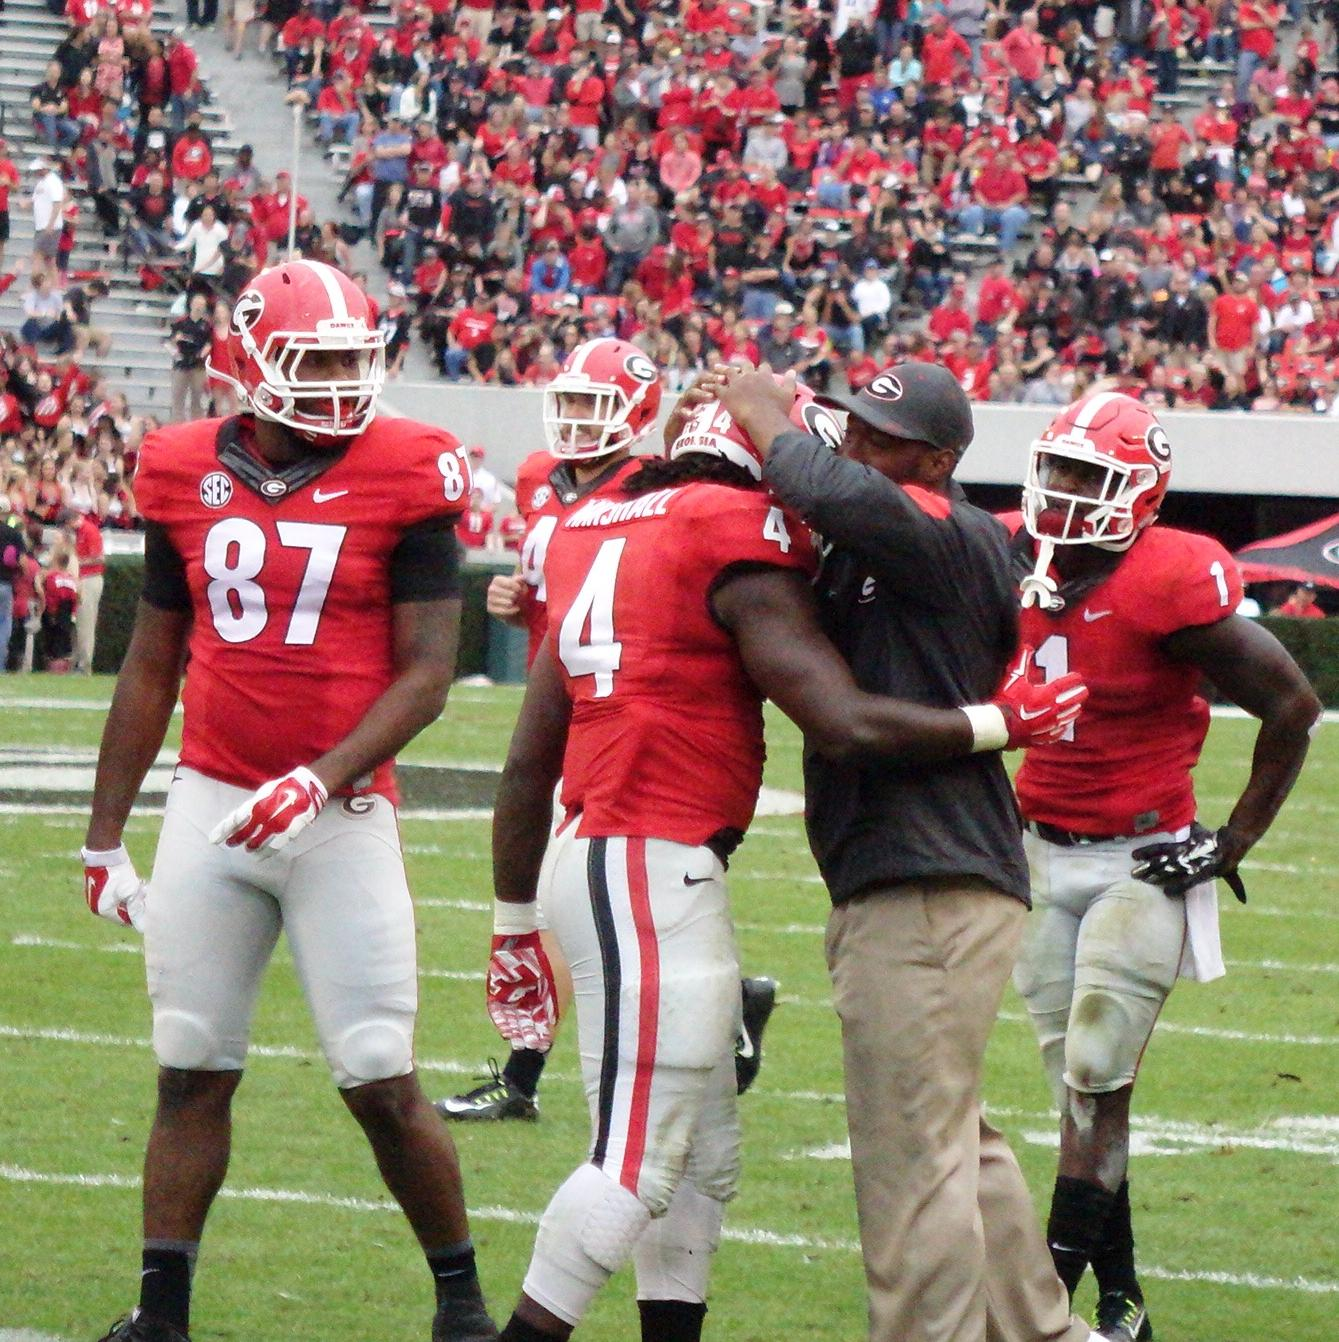 Keith Marshall receives some love from coaches after TD run - 2nd half of Kentucky vs. Georgia 07-Nov-2015 (Photo by Bulldawg Illustrated's Greg Poole)